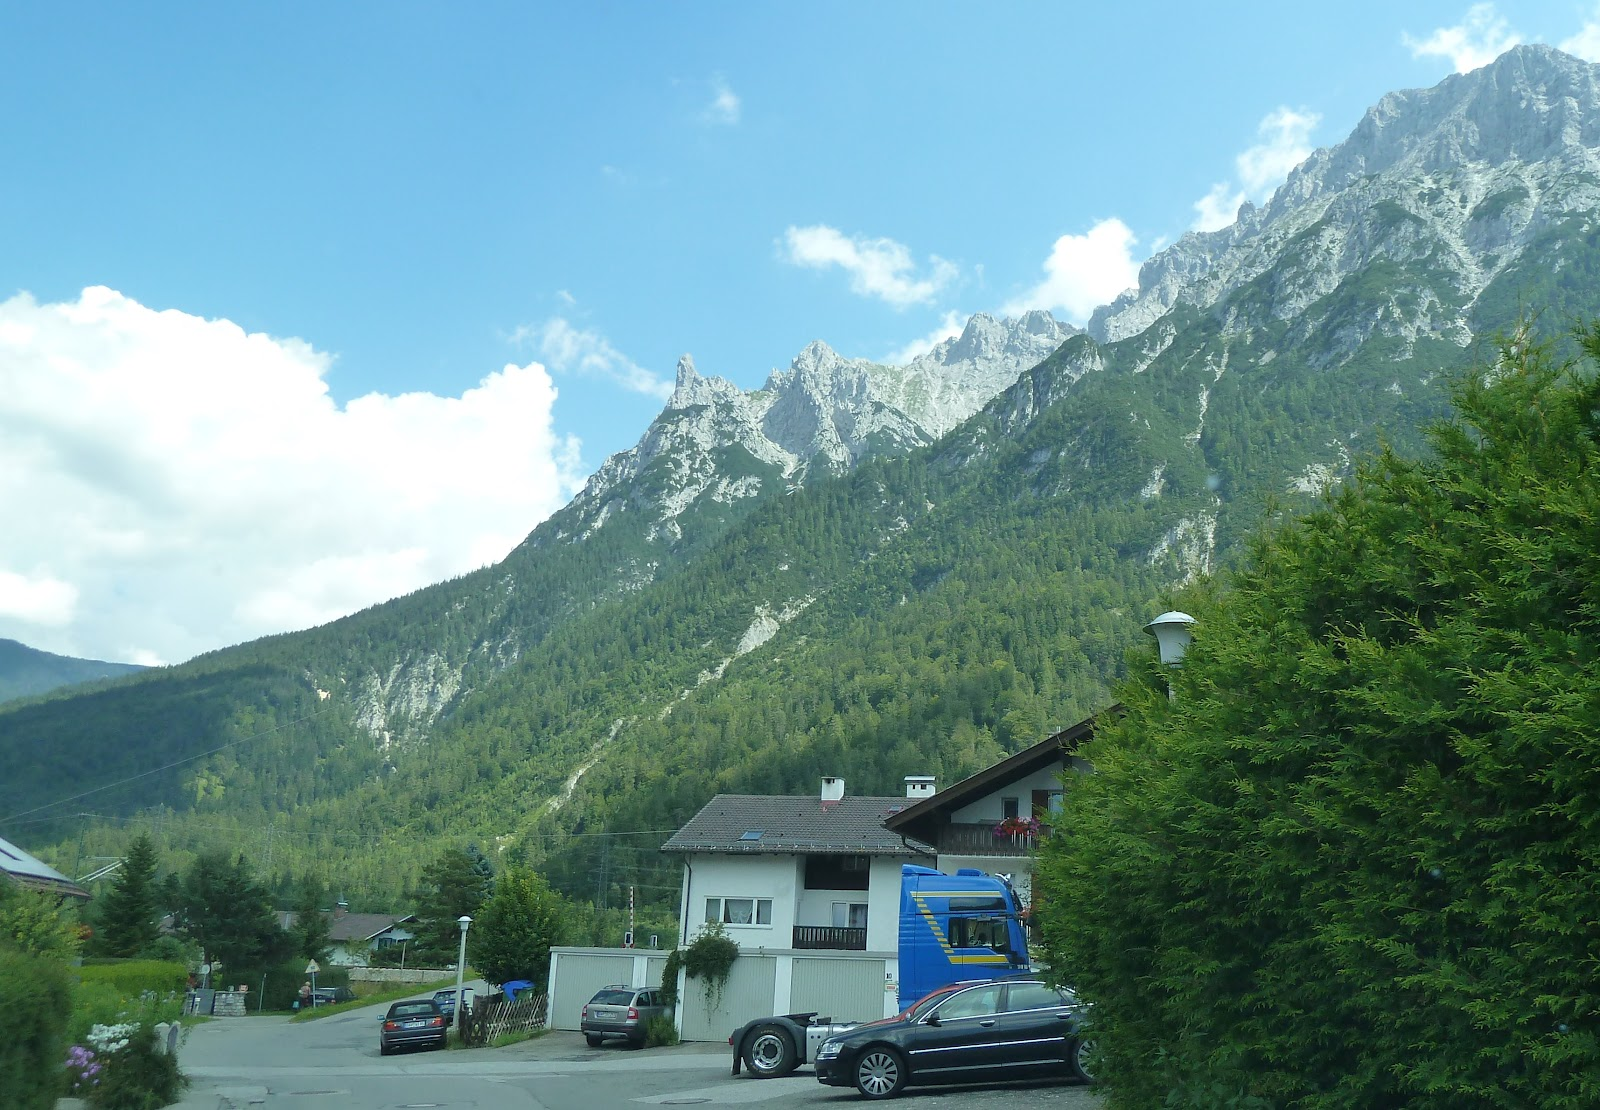 Day 3: Karwendel - Hiking in Bavaria and Austria